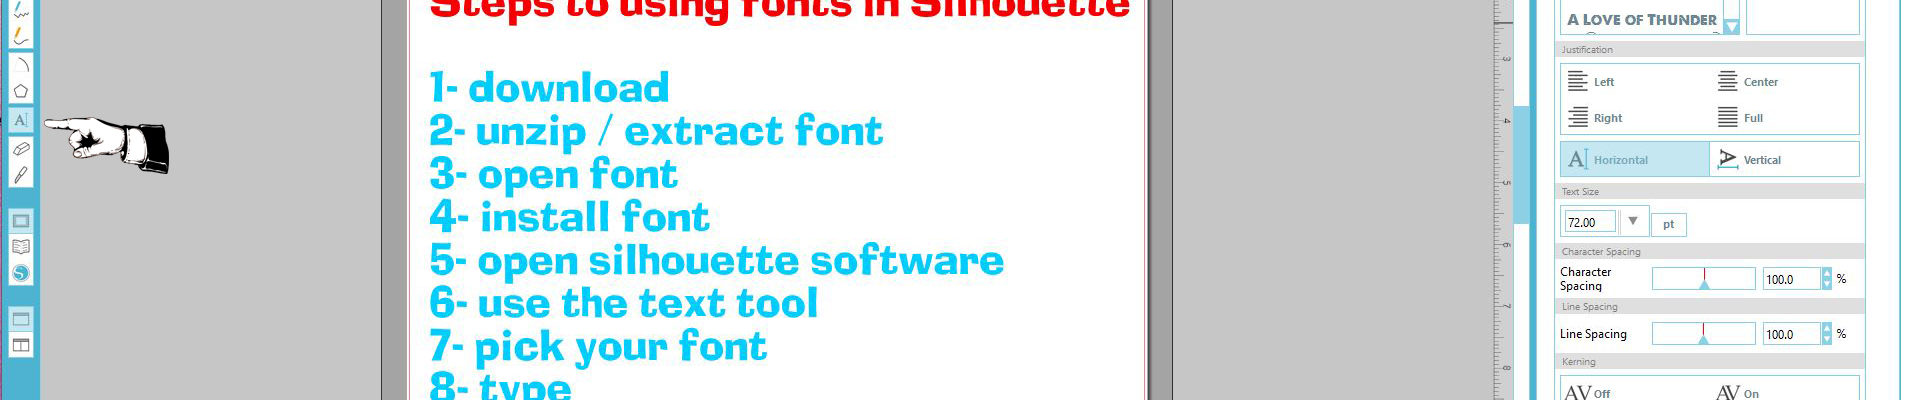 Steps to using fonts in Silhouette Studio